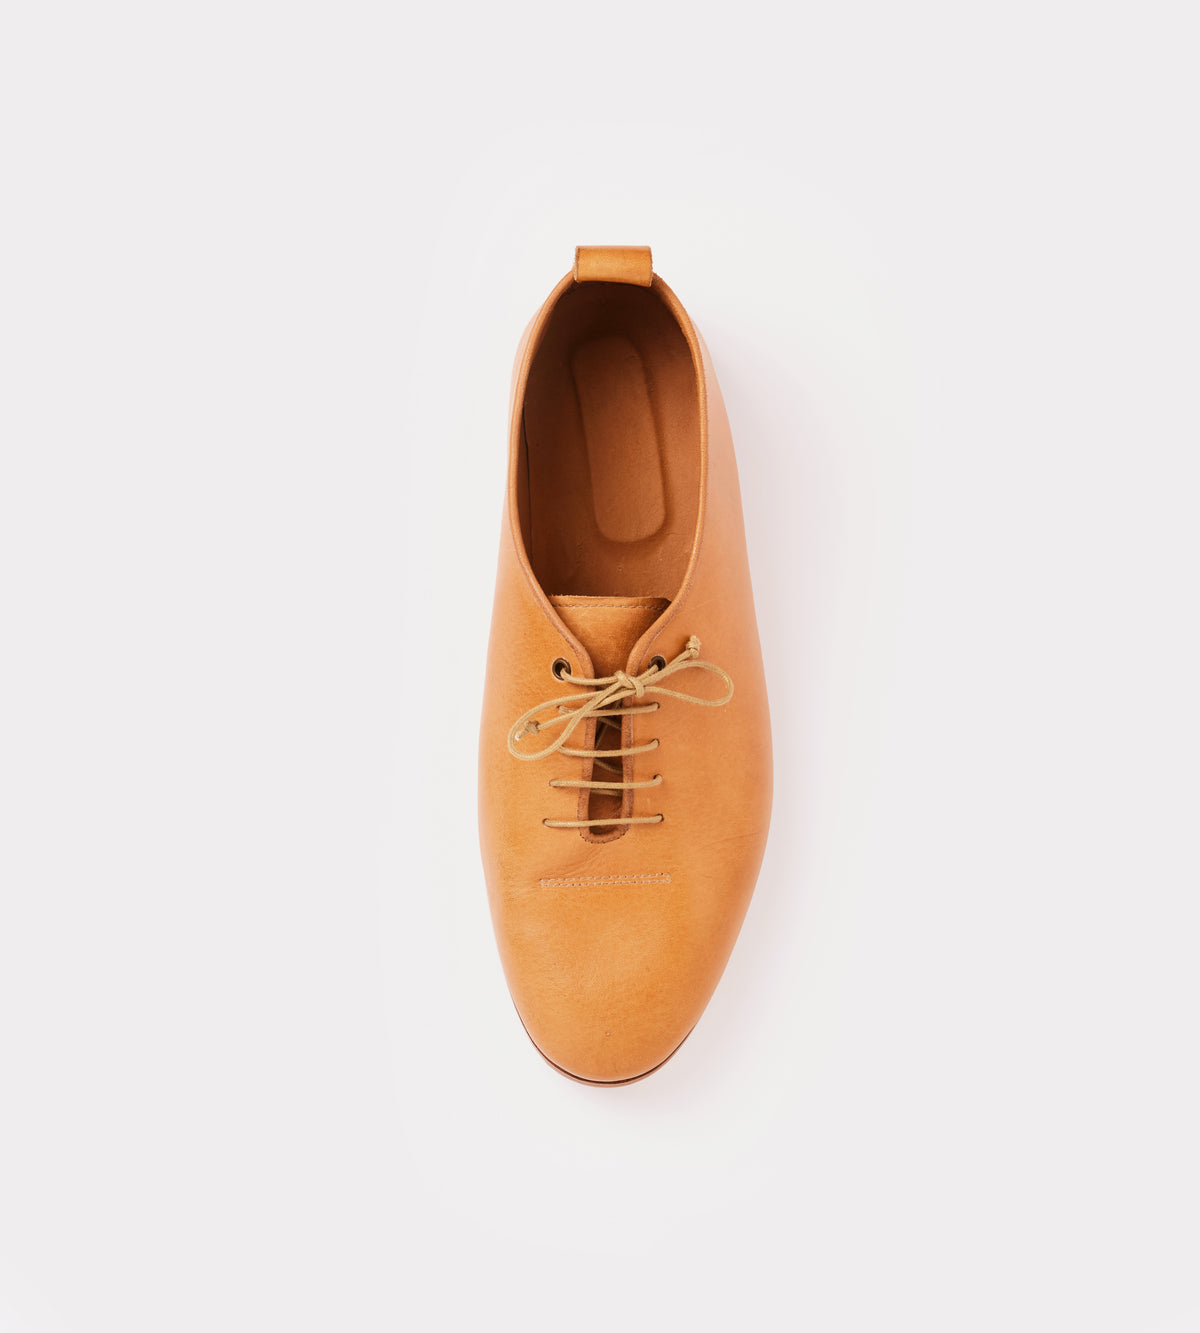 Natural calf leather wholecut soft shoe top view